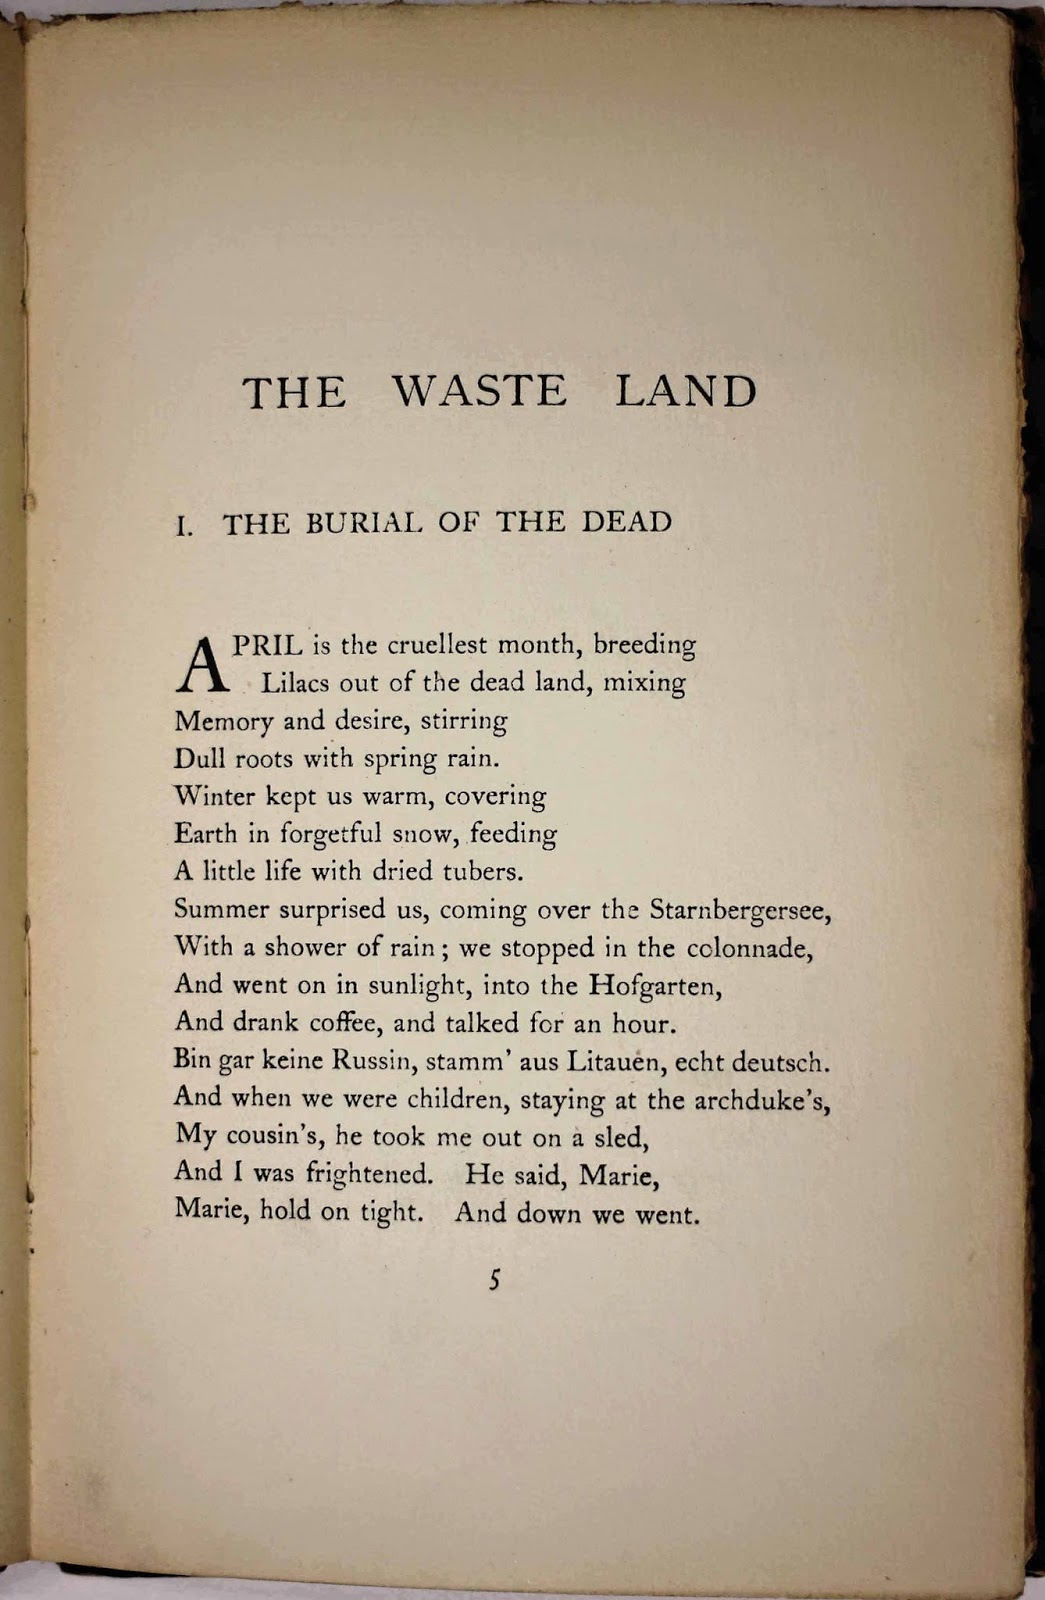 an analysis of the poem the waste land by ts eliot The waste land by t s eliot: critical analysis eliot's the waste land is an important landmark in the history of english poetry and one of the most talked about poem of the 20th century.